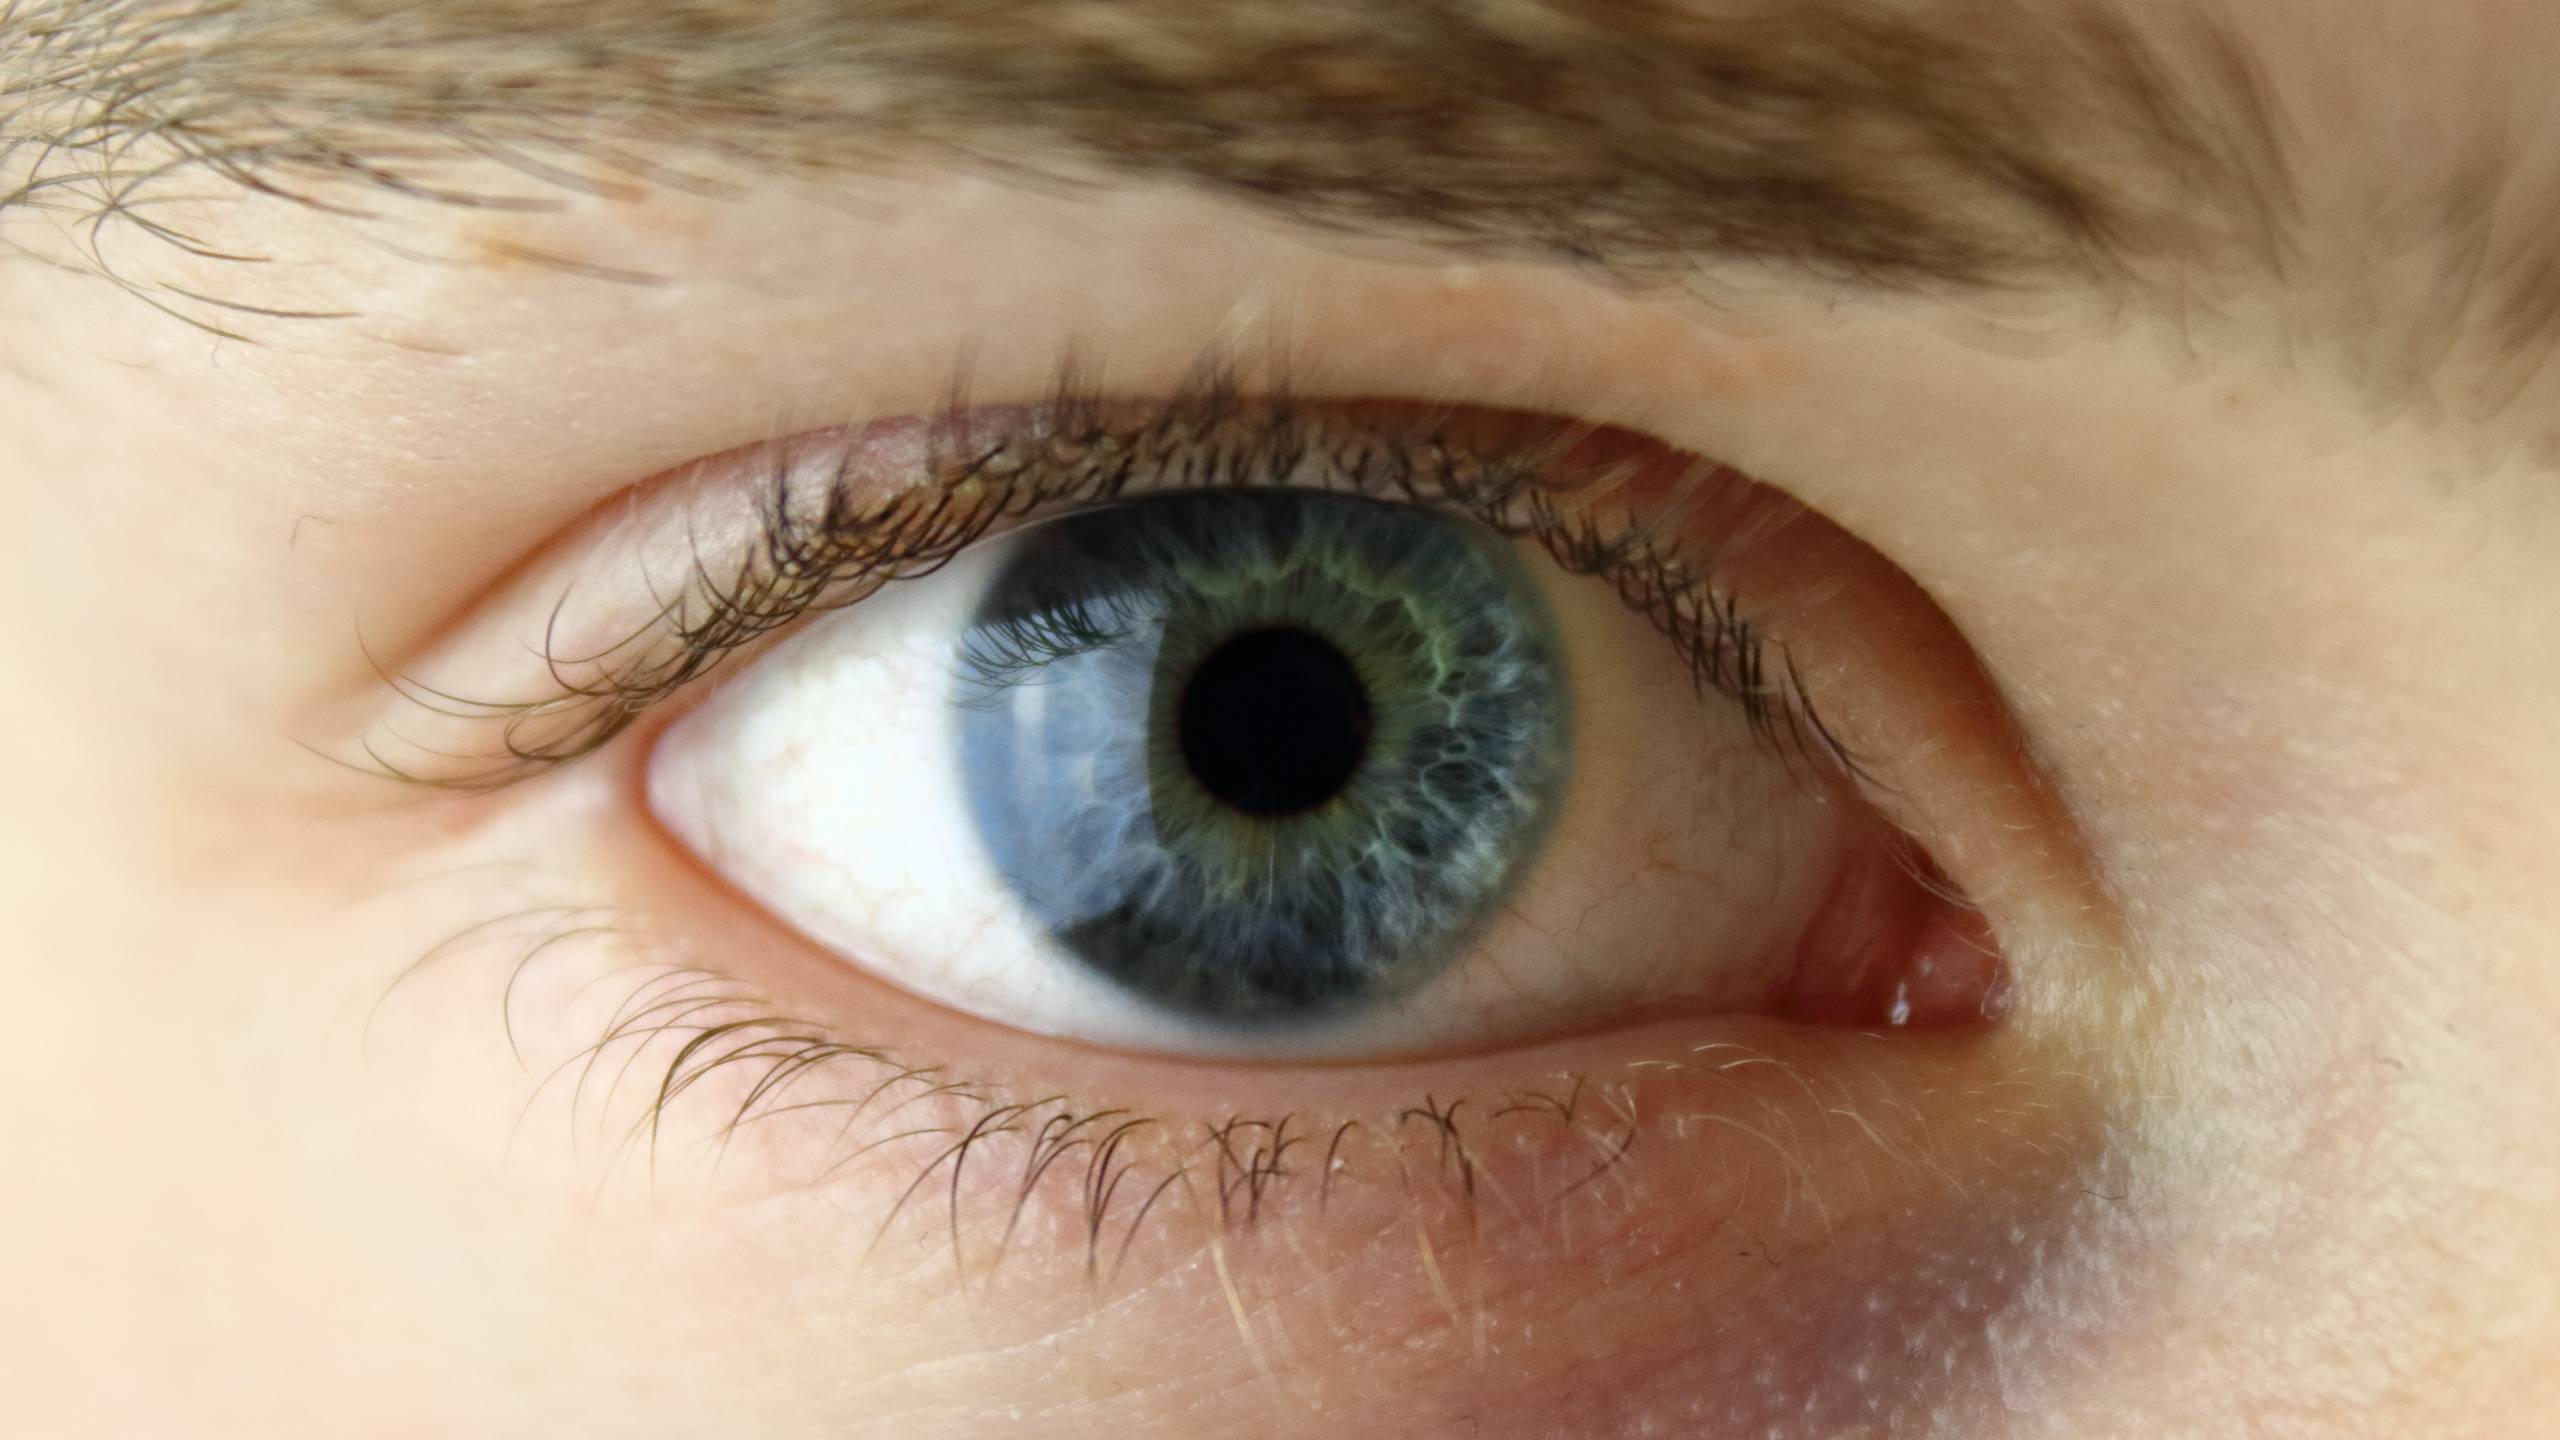 Ocular Herpes Can Be Treated But Not Prevented With A